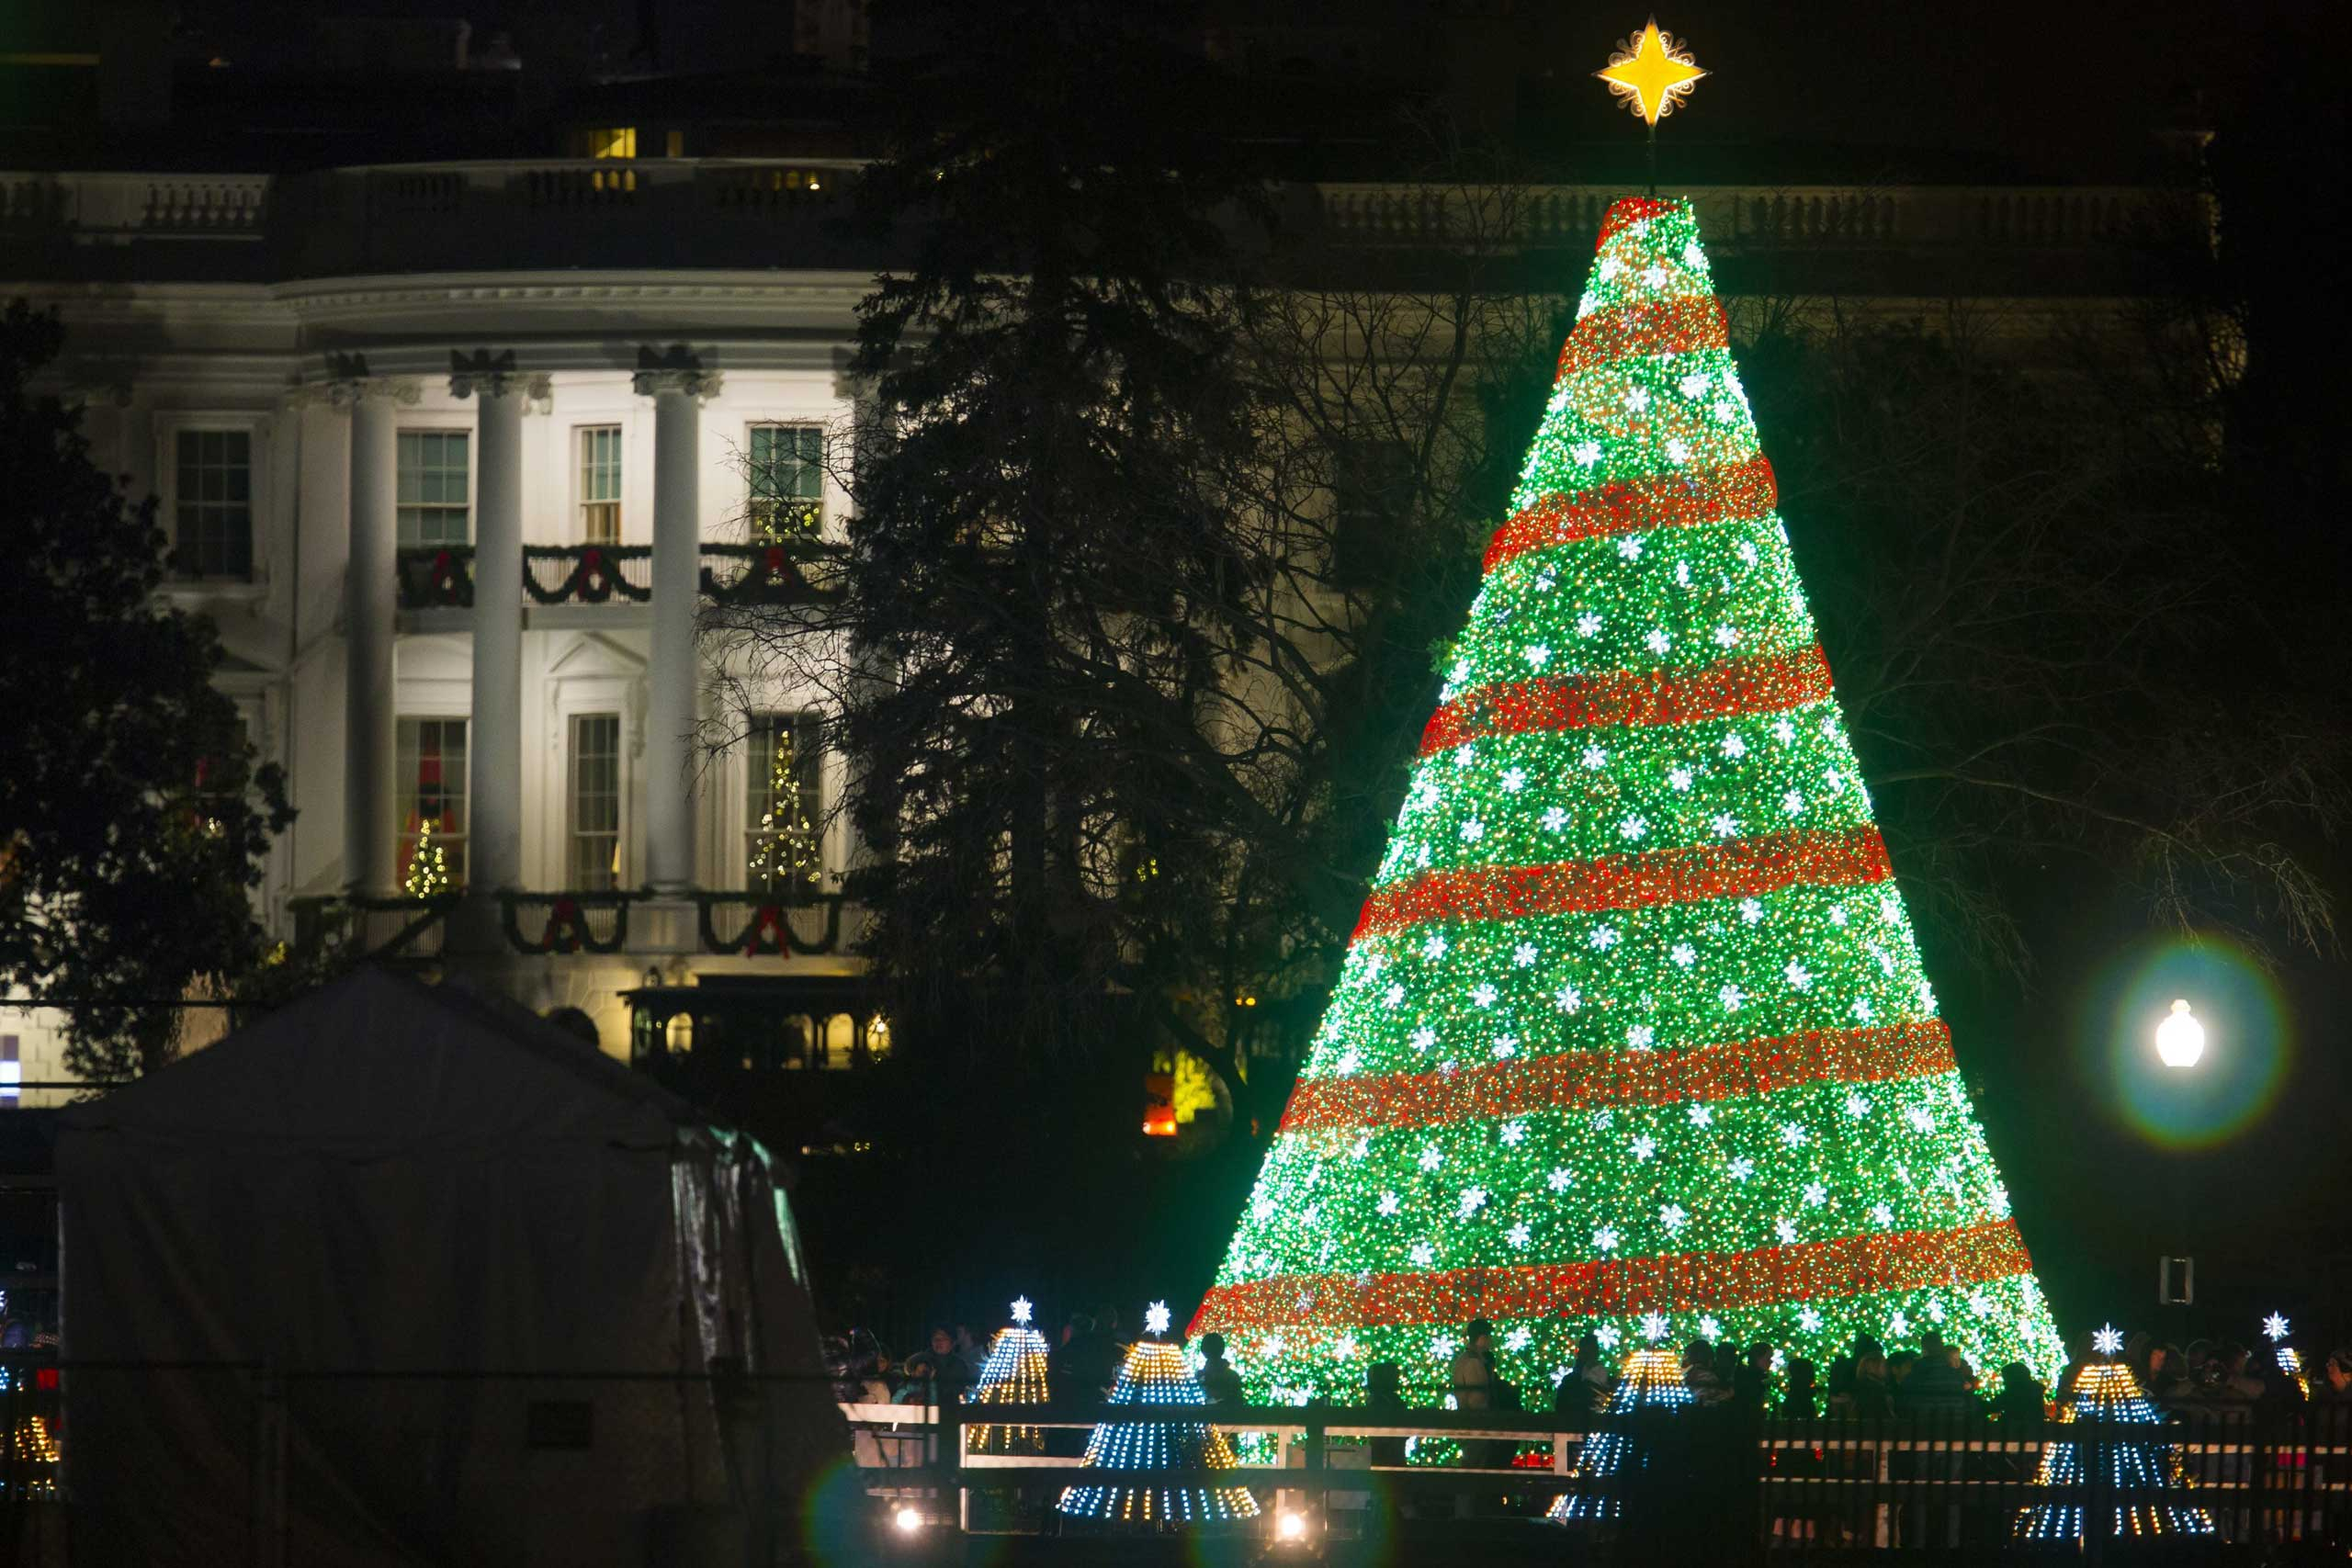 The National Christmas Tree is seen on the Ellipse, south of the White House in Washington on Dec. 7, 2014.